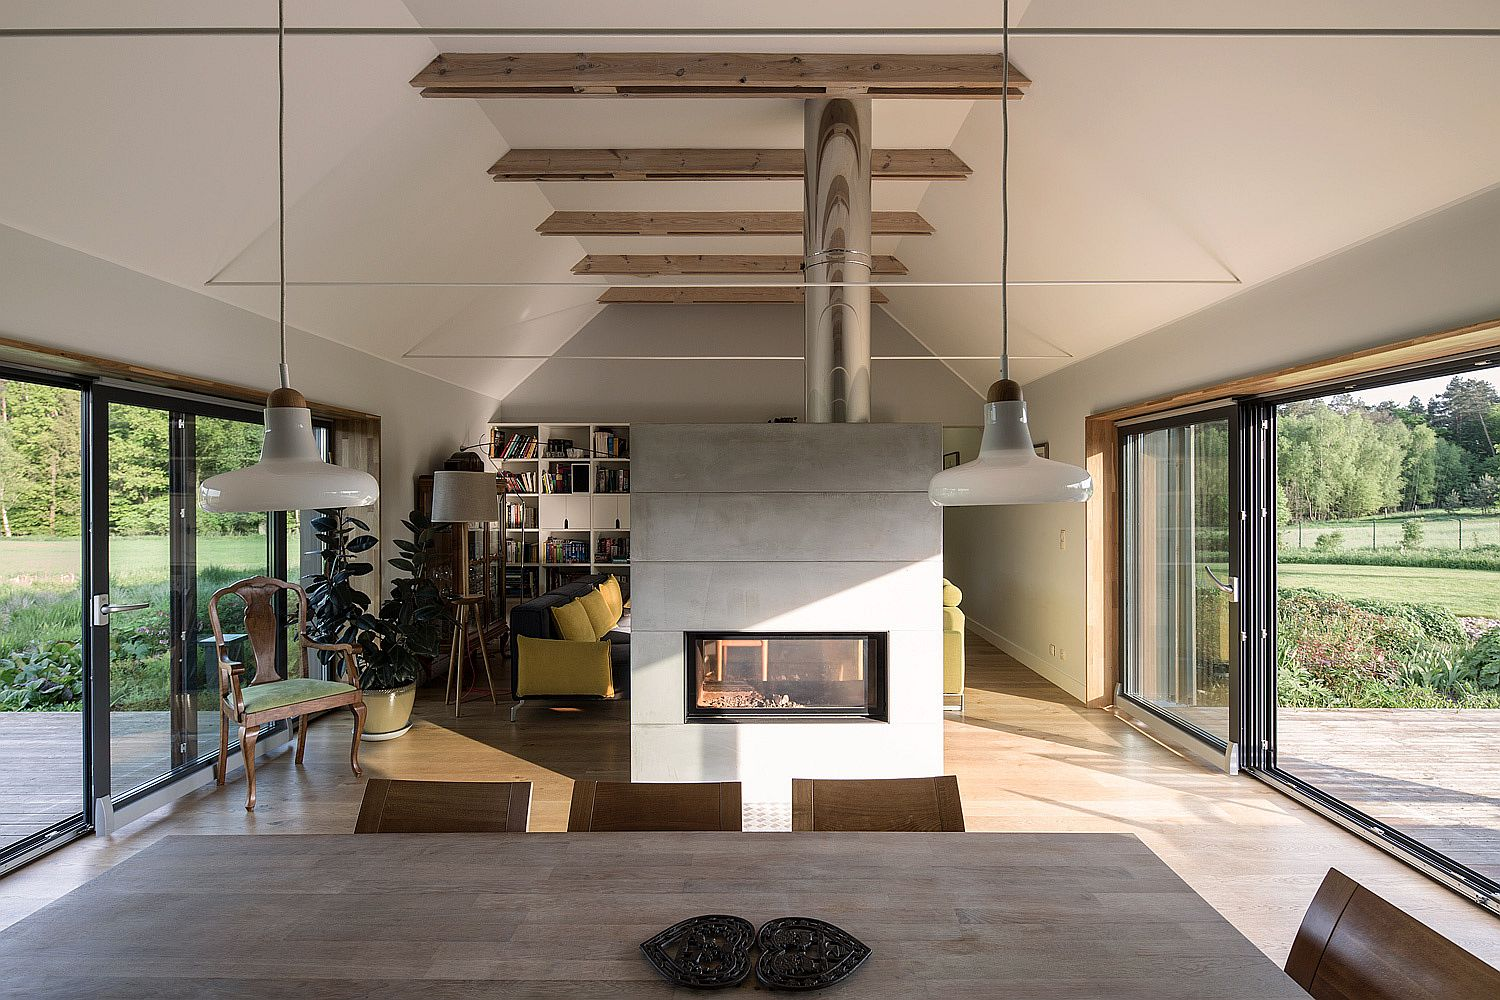 Fireplace delineates the living room from the kitchen and dining